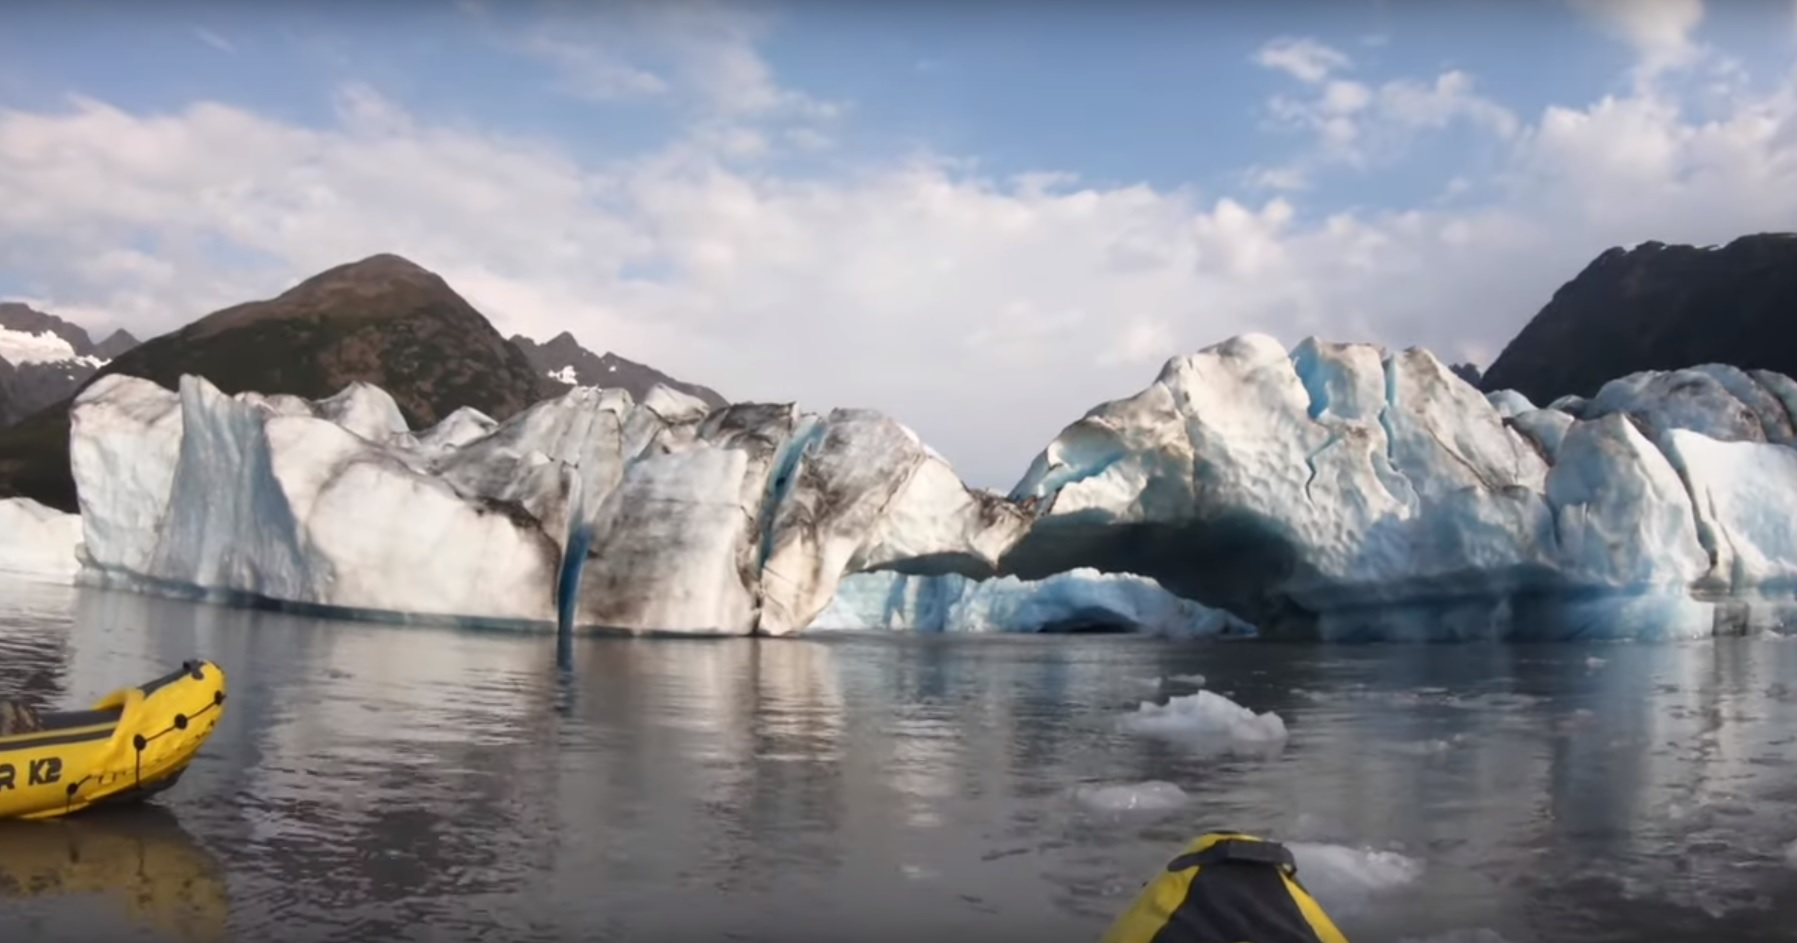 A glacier in Alaska as seen by two kayakers